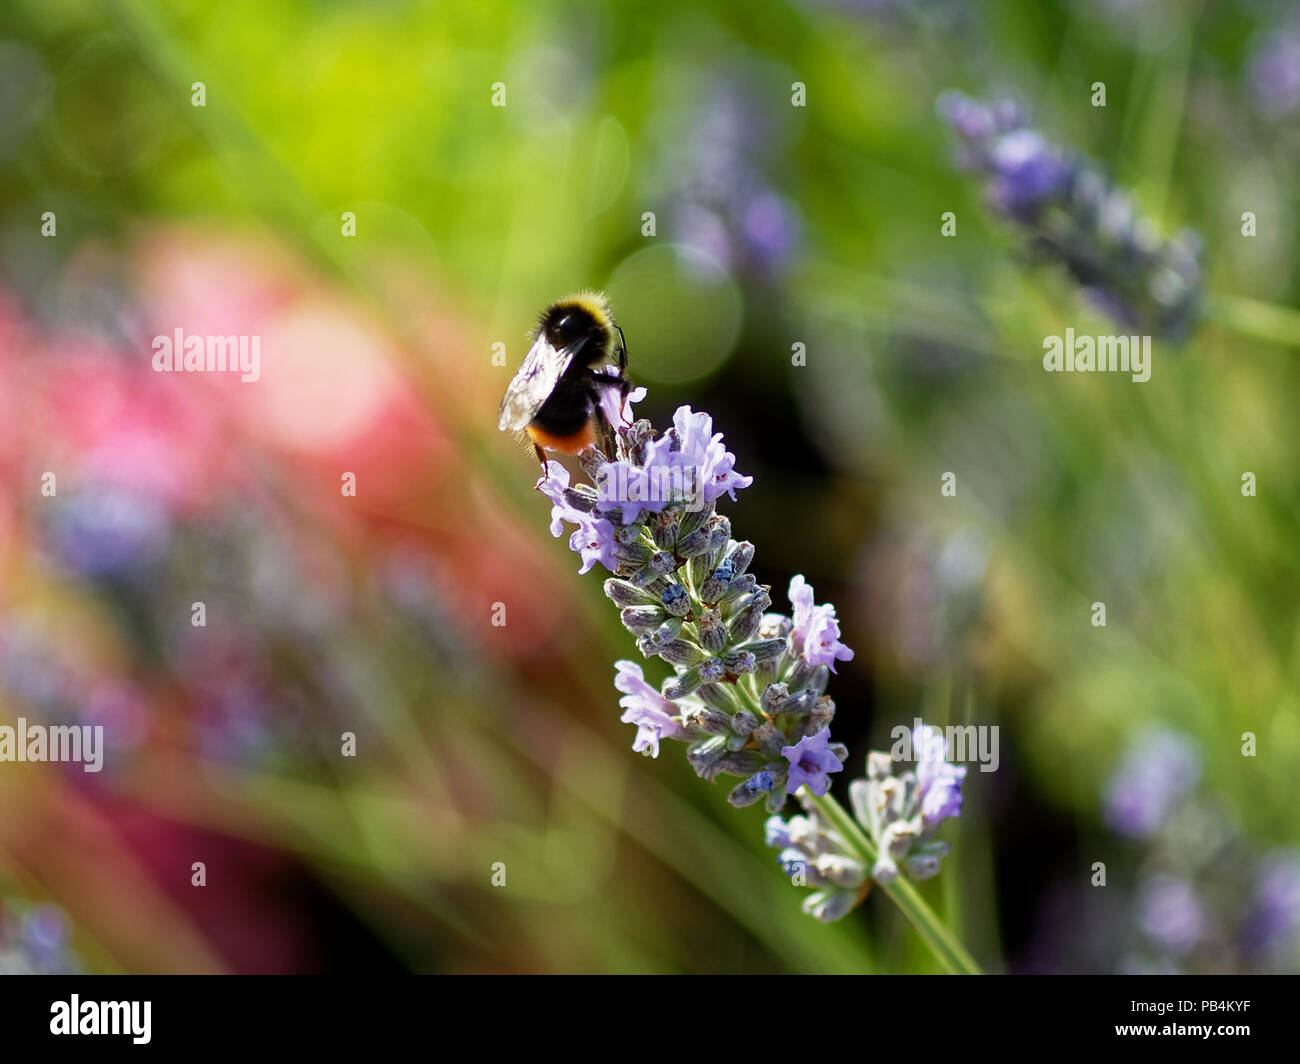 Bee in garden, Newport, South Wales - Stock Image